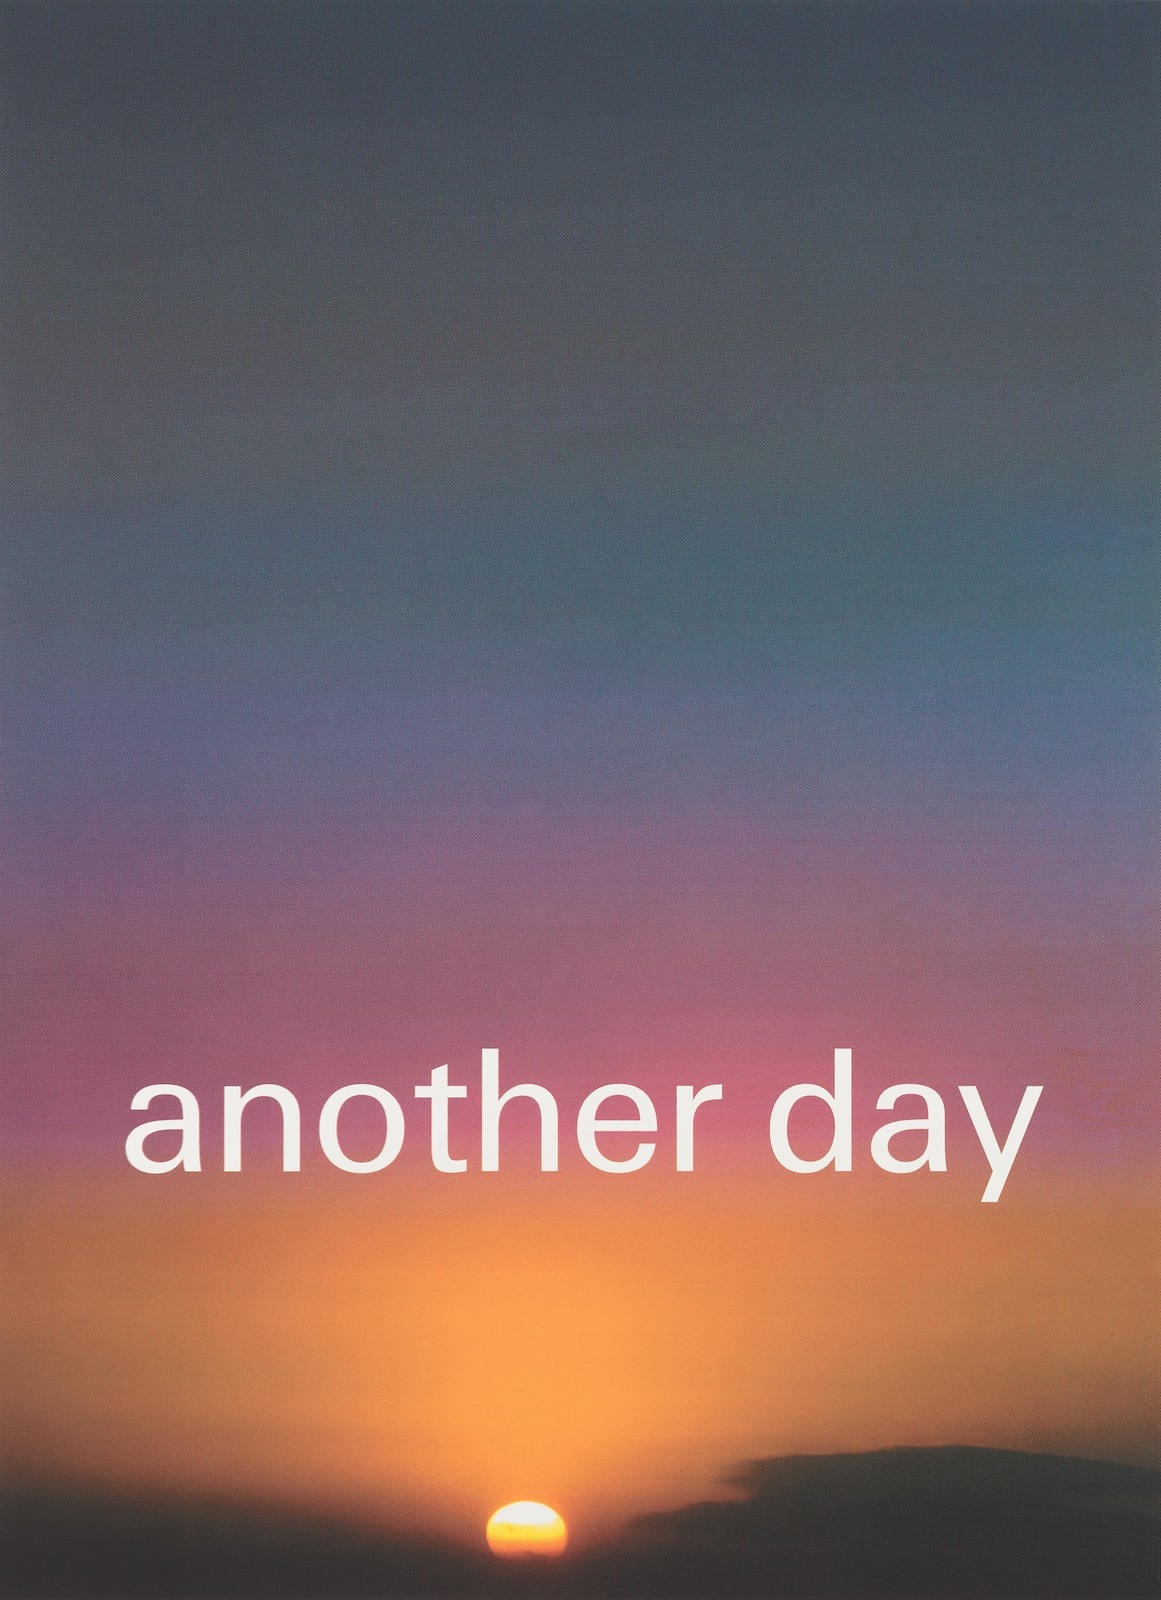 Another Day, 2011, silkscreen on paper, framed, 110 x 80 cm, ed. 50